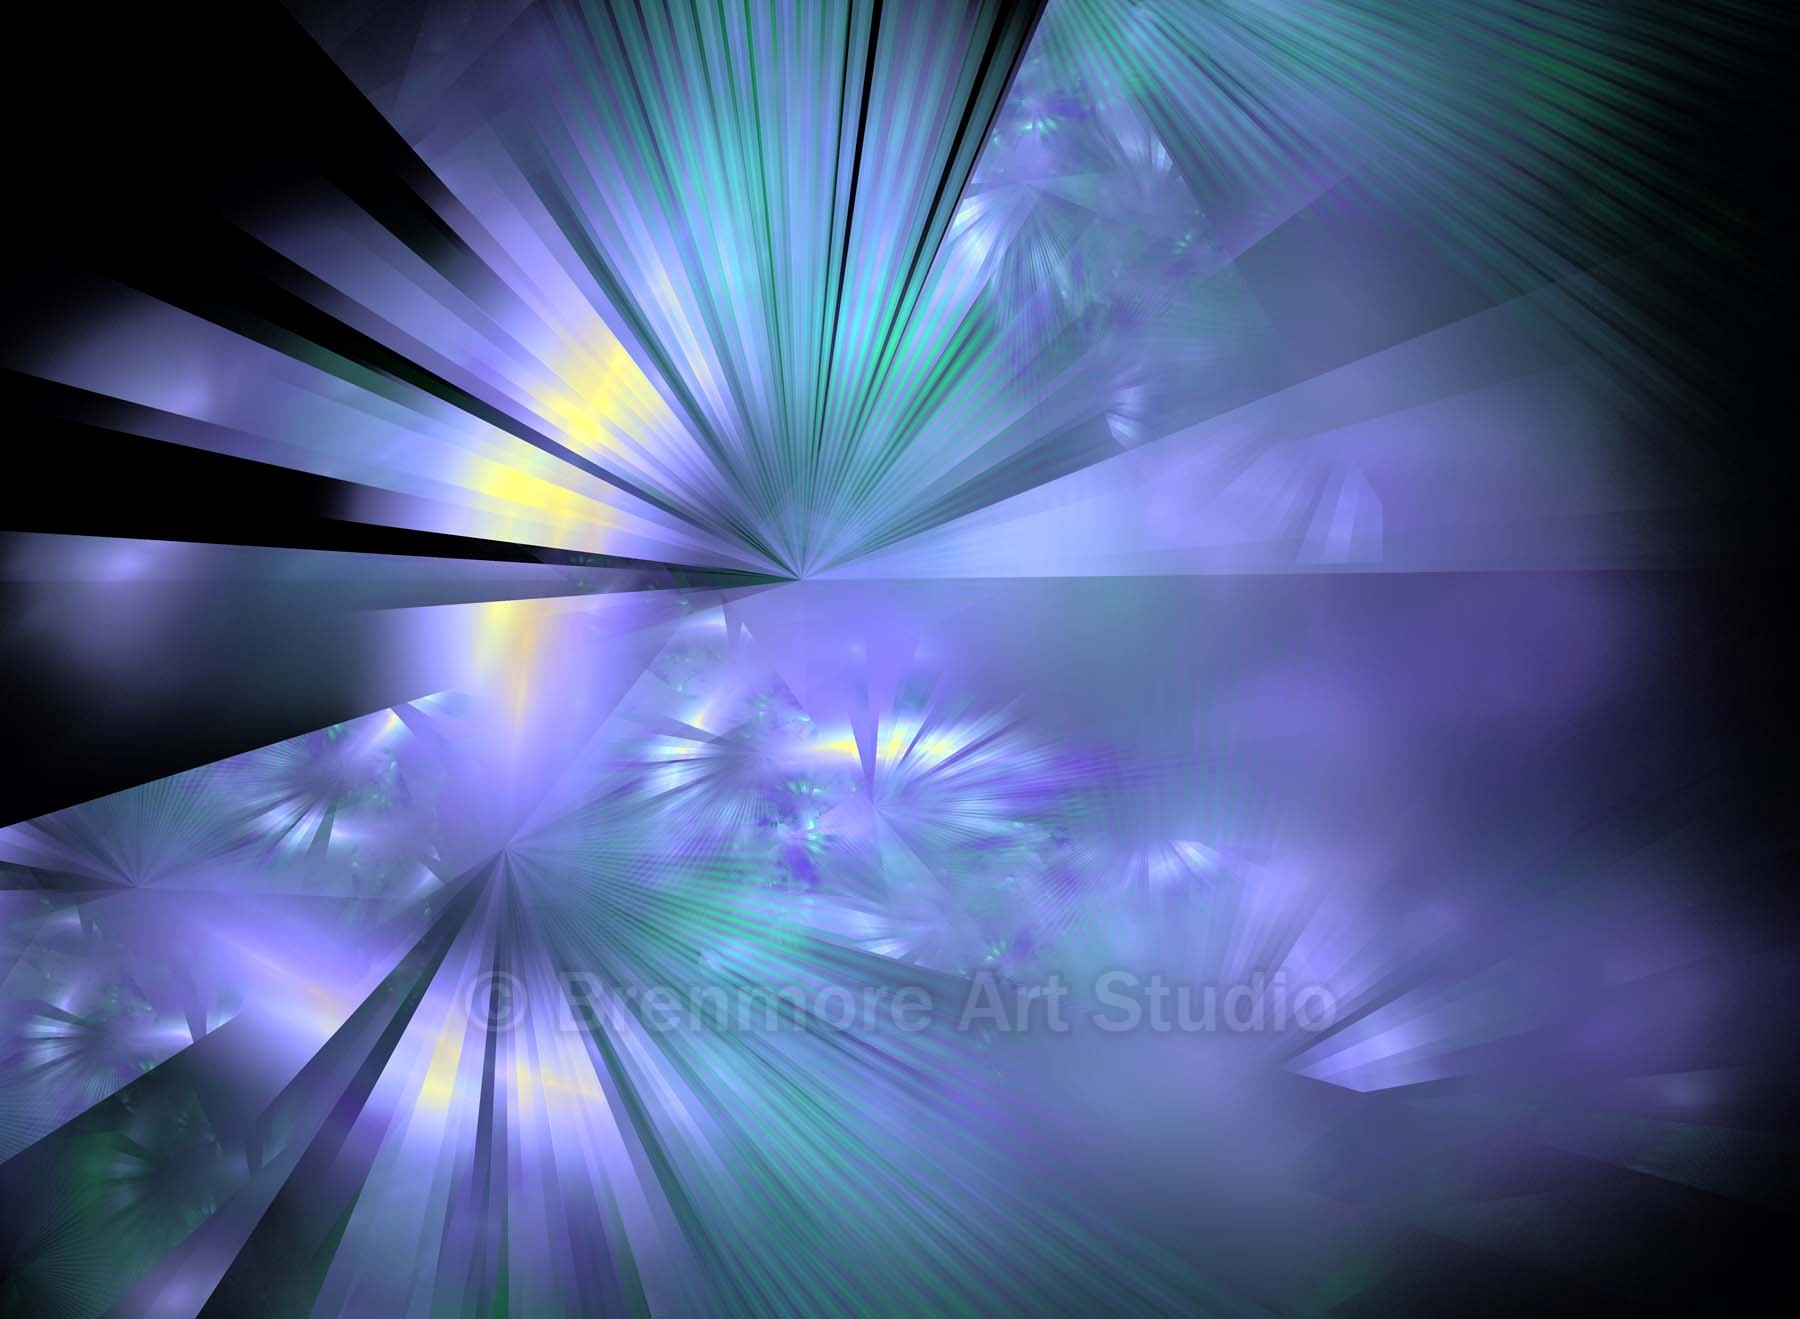 Reflective Light Rays in Purple, Blues and Yellow